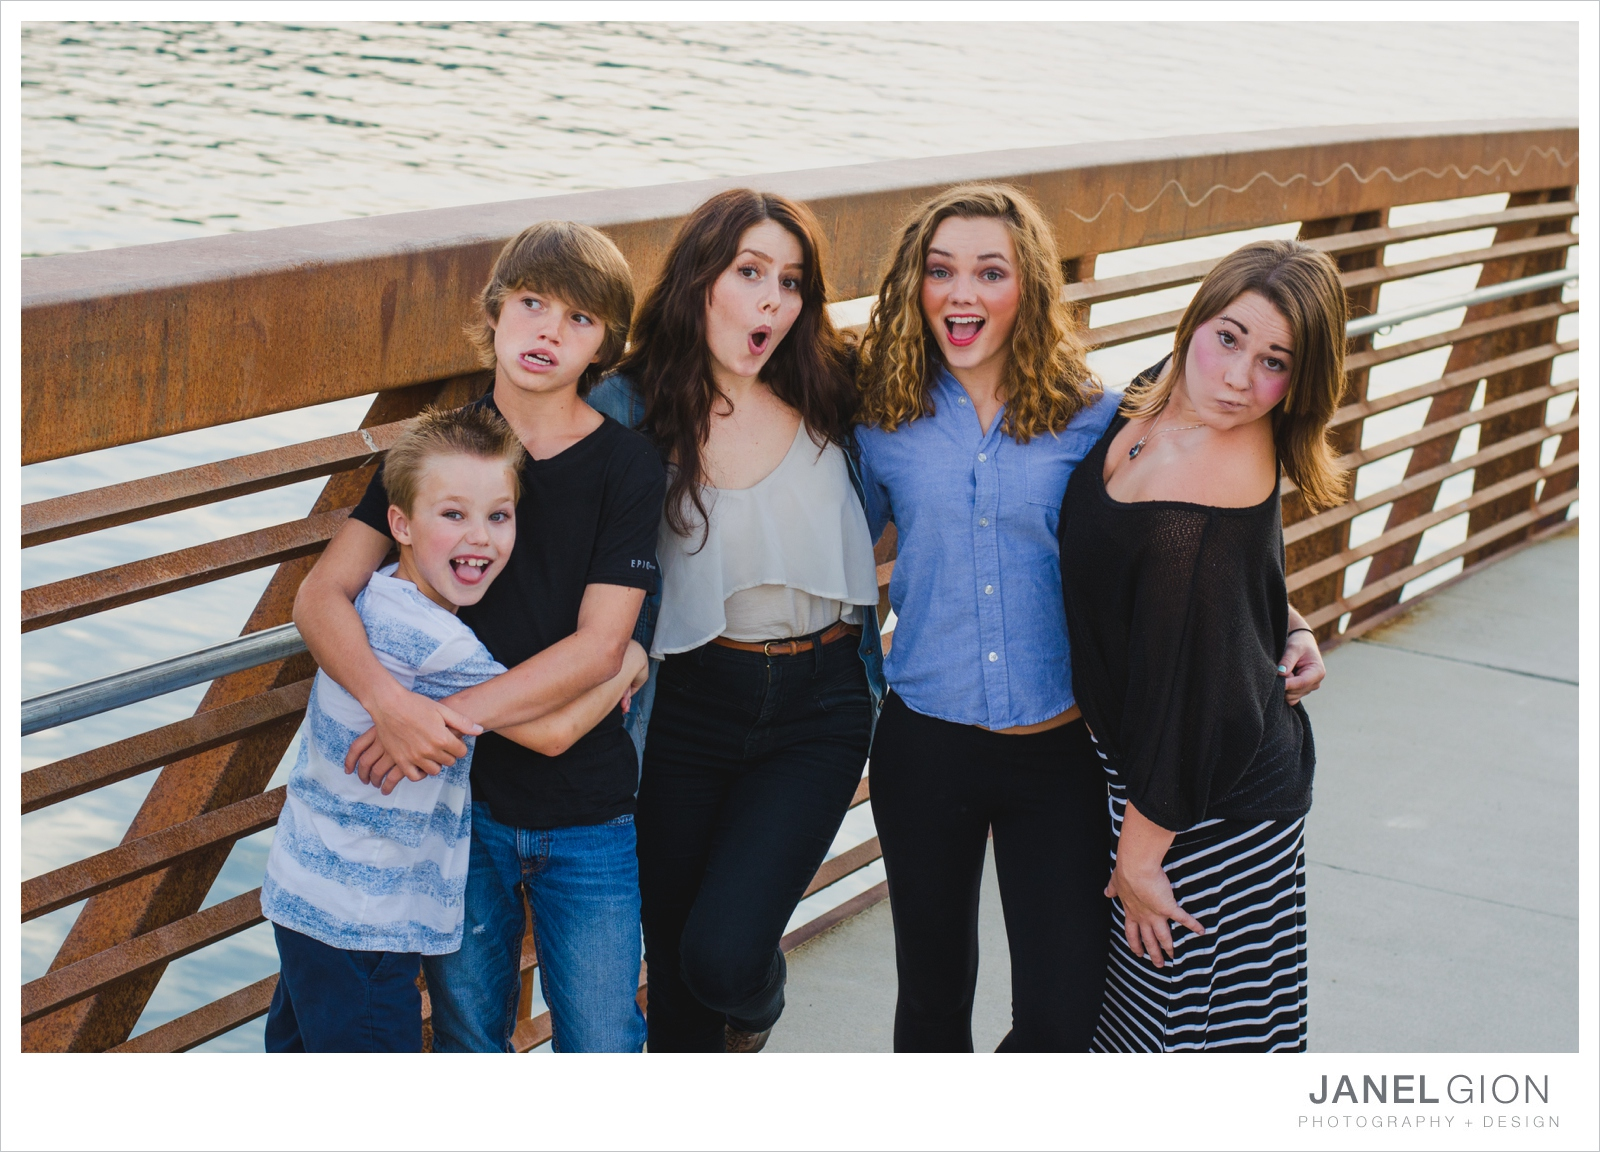 North-Idaho-Family-Children-Photographer-Year-in-Review-Contest-2013-Lifestyle-Family-Portraits-by-Janel-Gion-Photography_0019.jpg